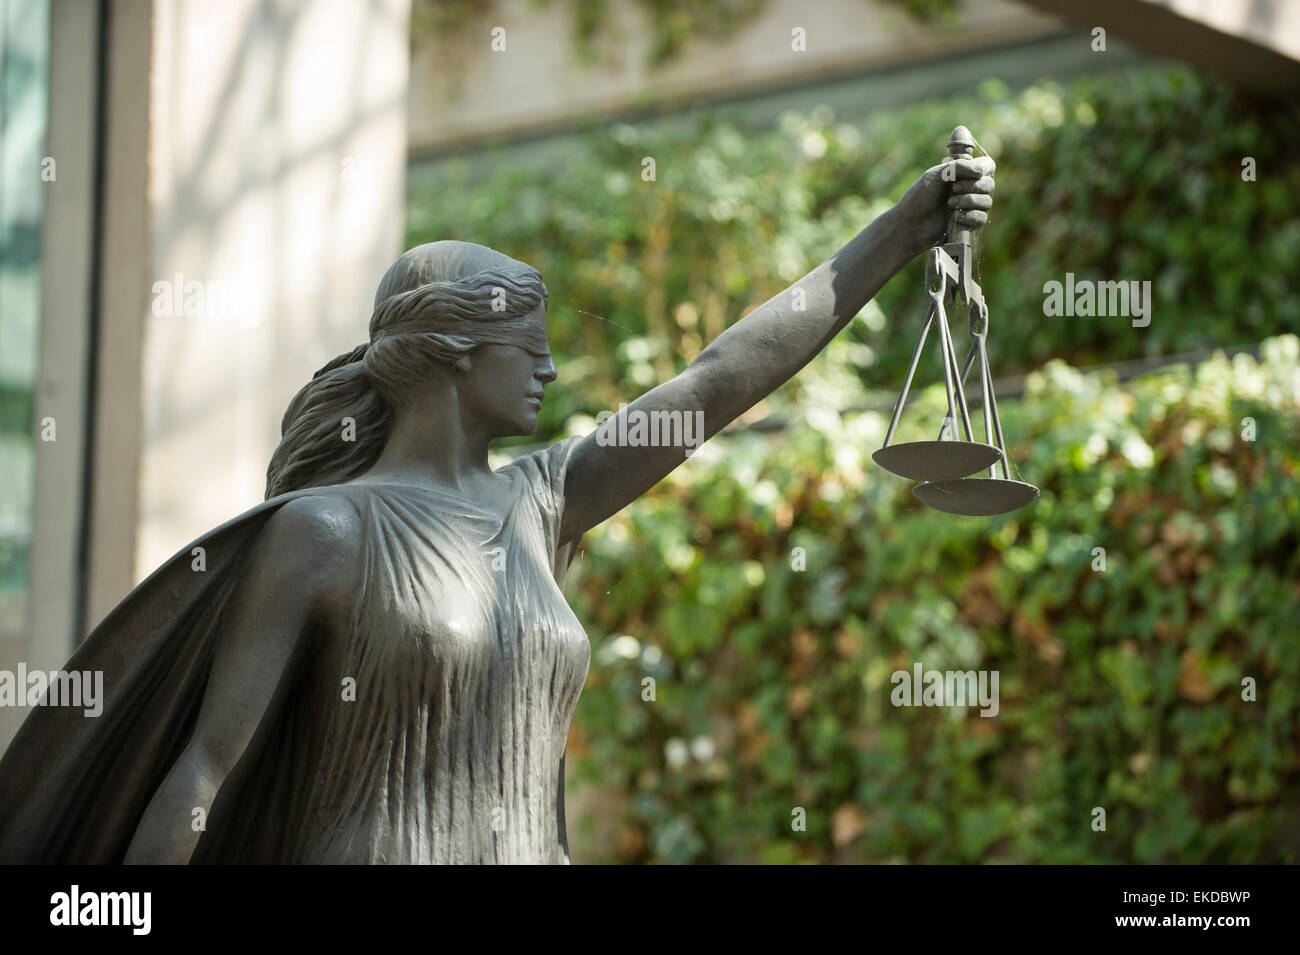 Lady of Justice statue, Vancouver Courthouse - Stock Image